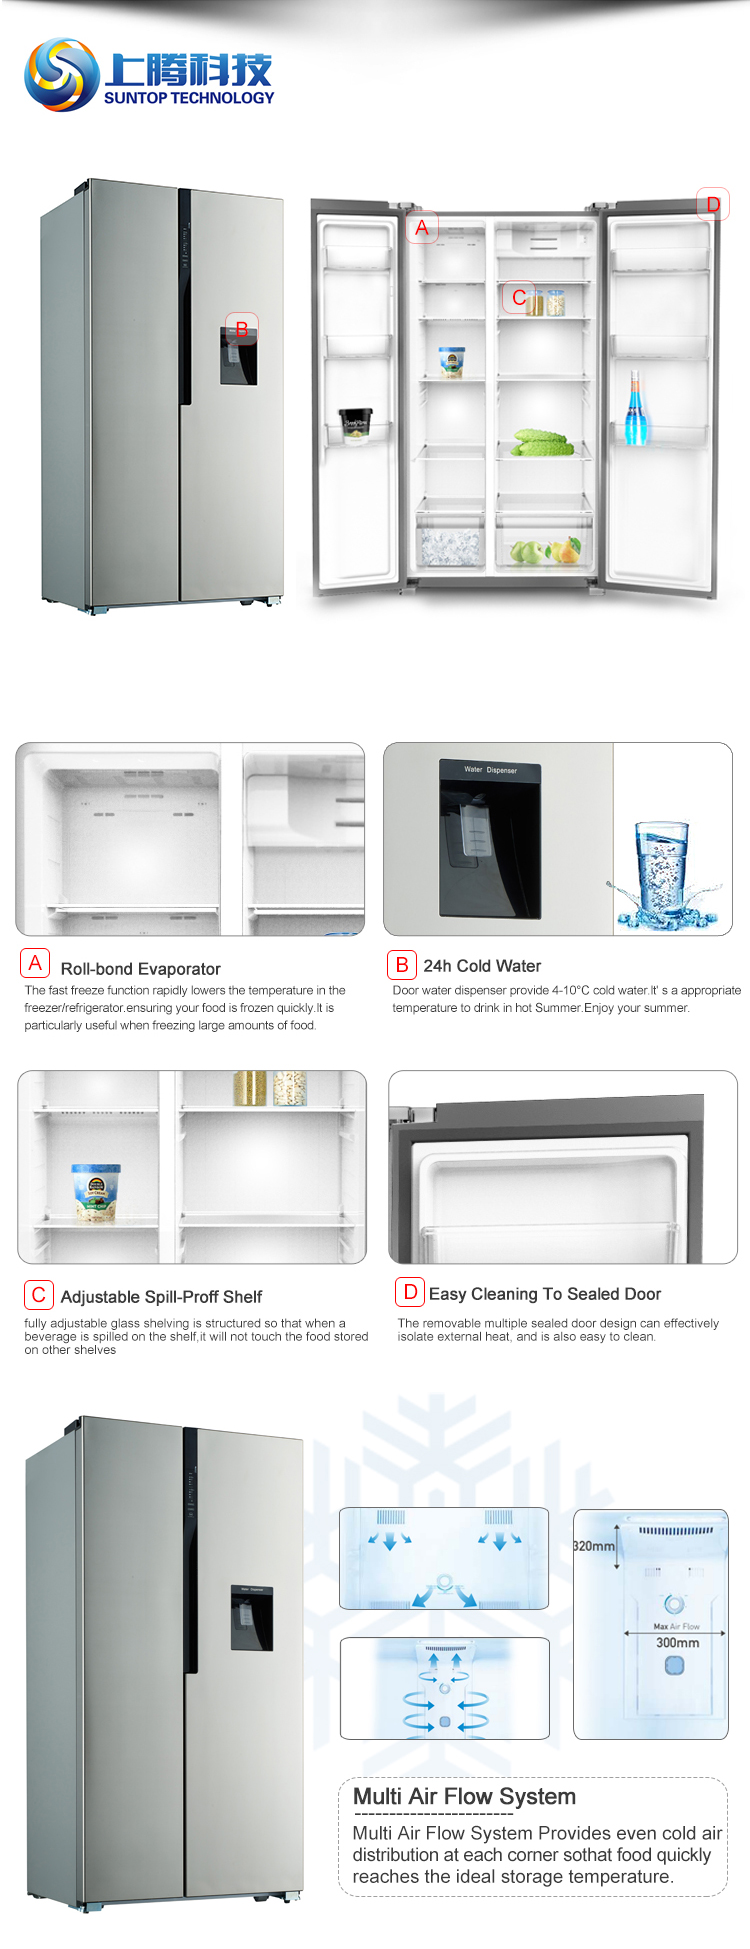 No Frost Multifunction 24h Cold Water No Frost Fast Freeze Water Dispenser Double Door Upright Freezer Commercial Fridge Refrigerator Buy Fridge